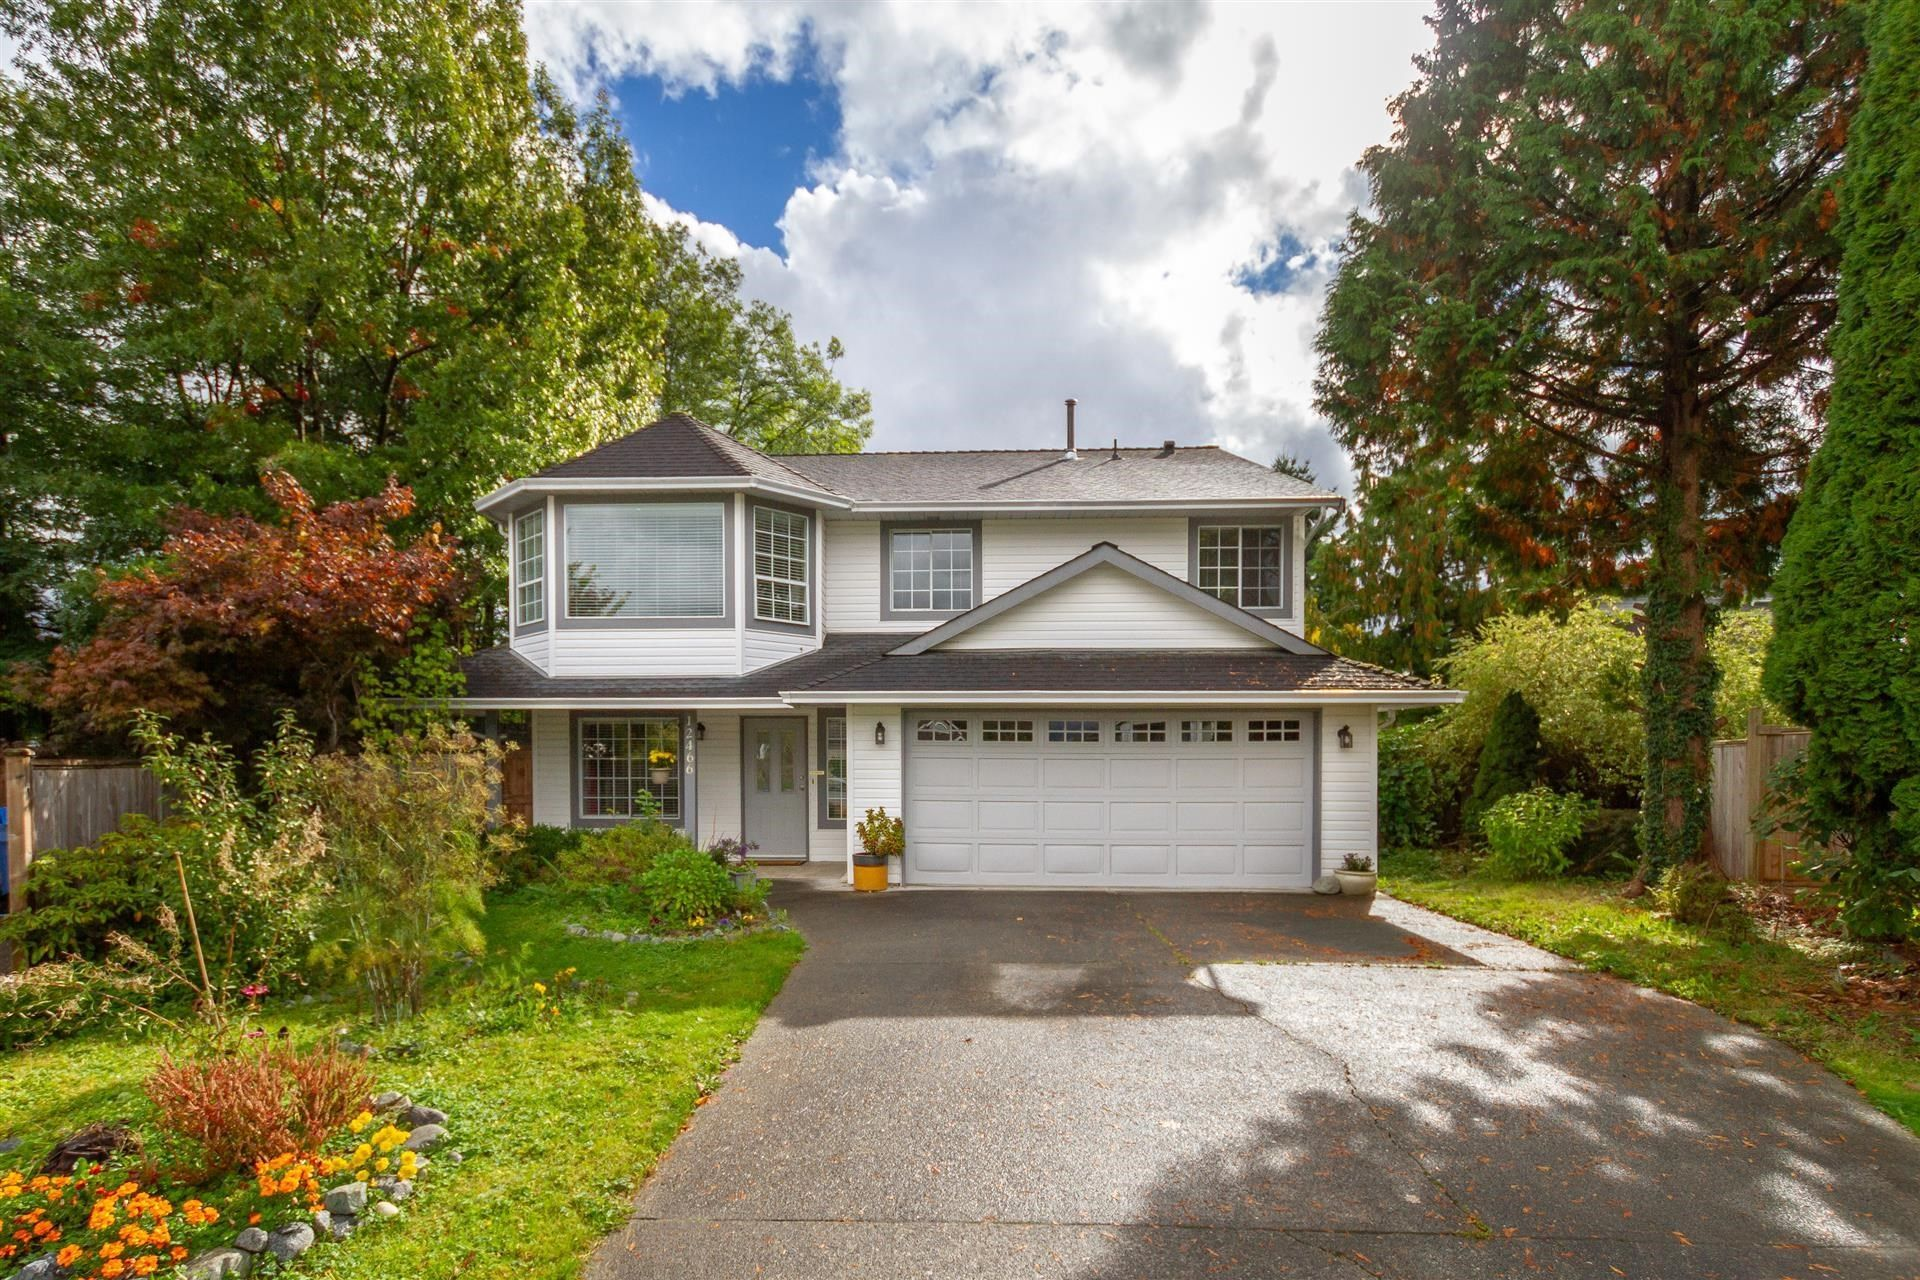 Main Photo: 12466 231B Street in Maple Ridge: East Central House for sale : MLS®# R2624247